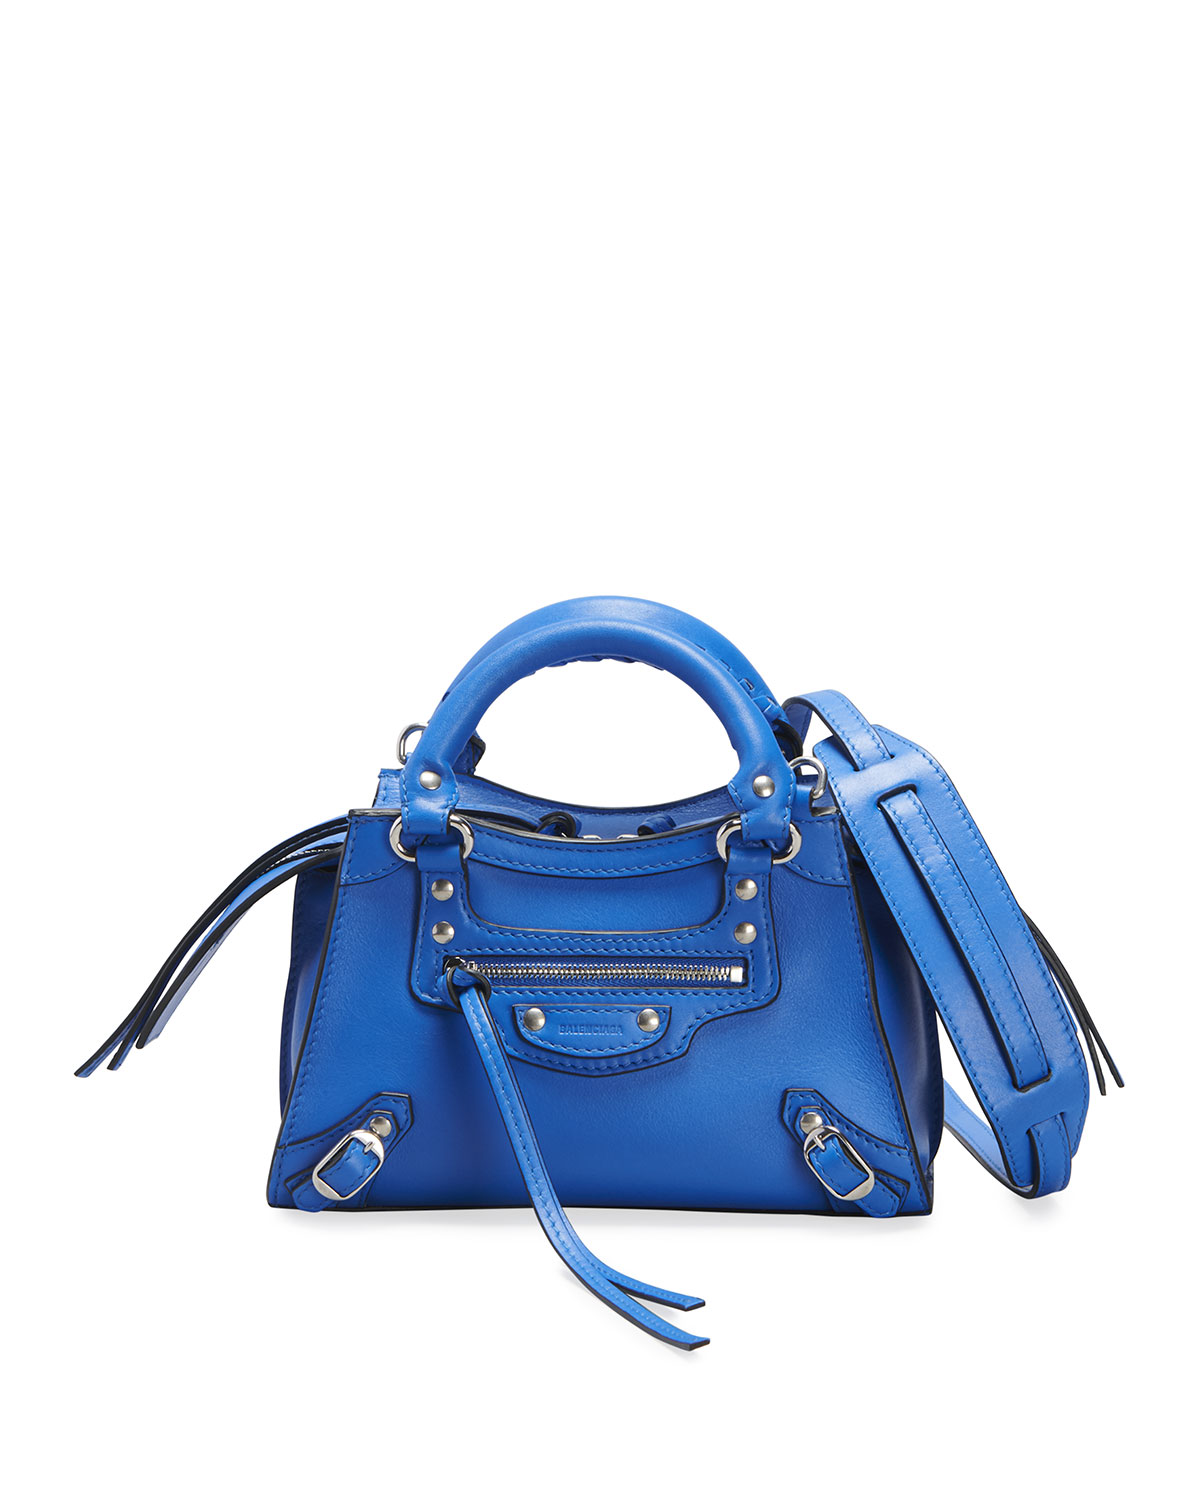 Balenciaga NEO CLASSIC CITY MINI SMOOTH CALFSKIN SATCHEL BAG